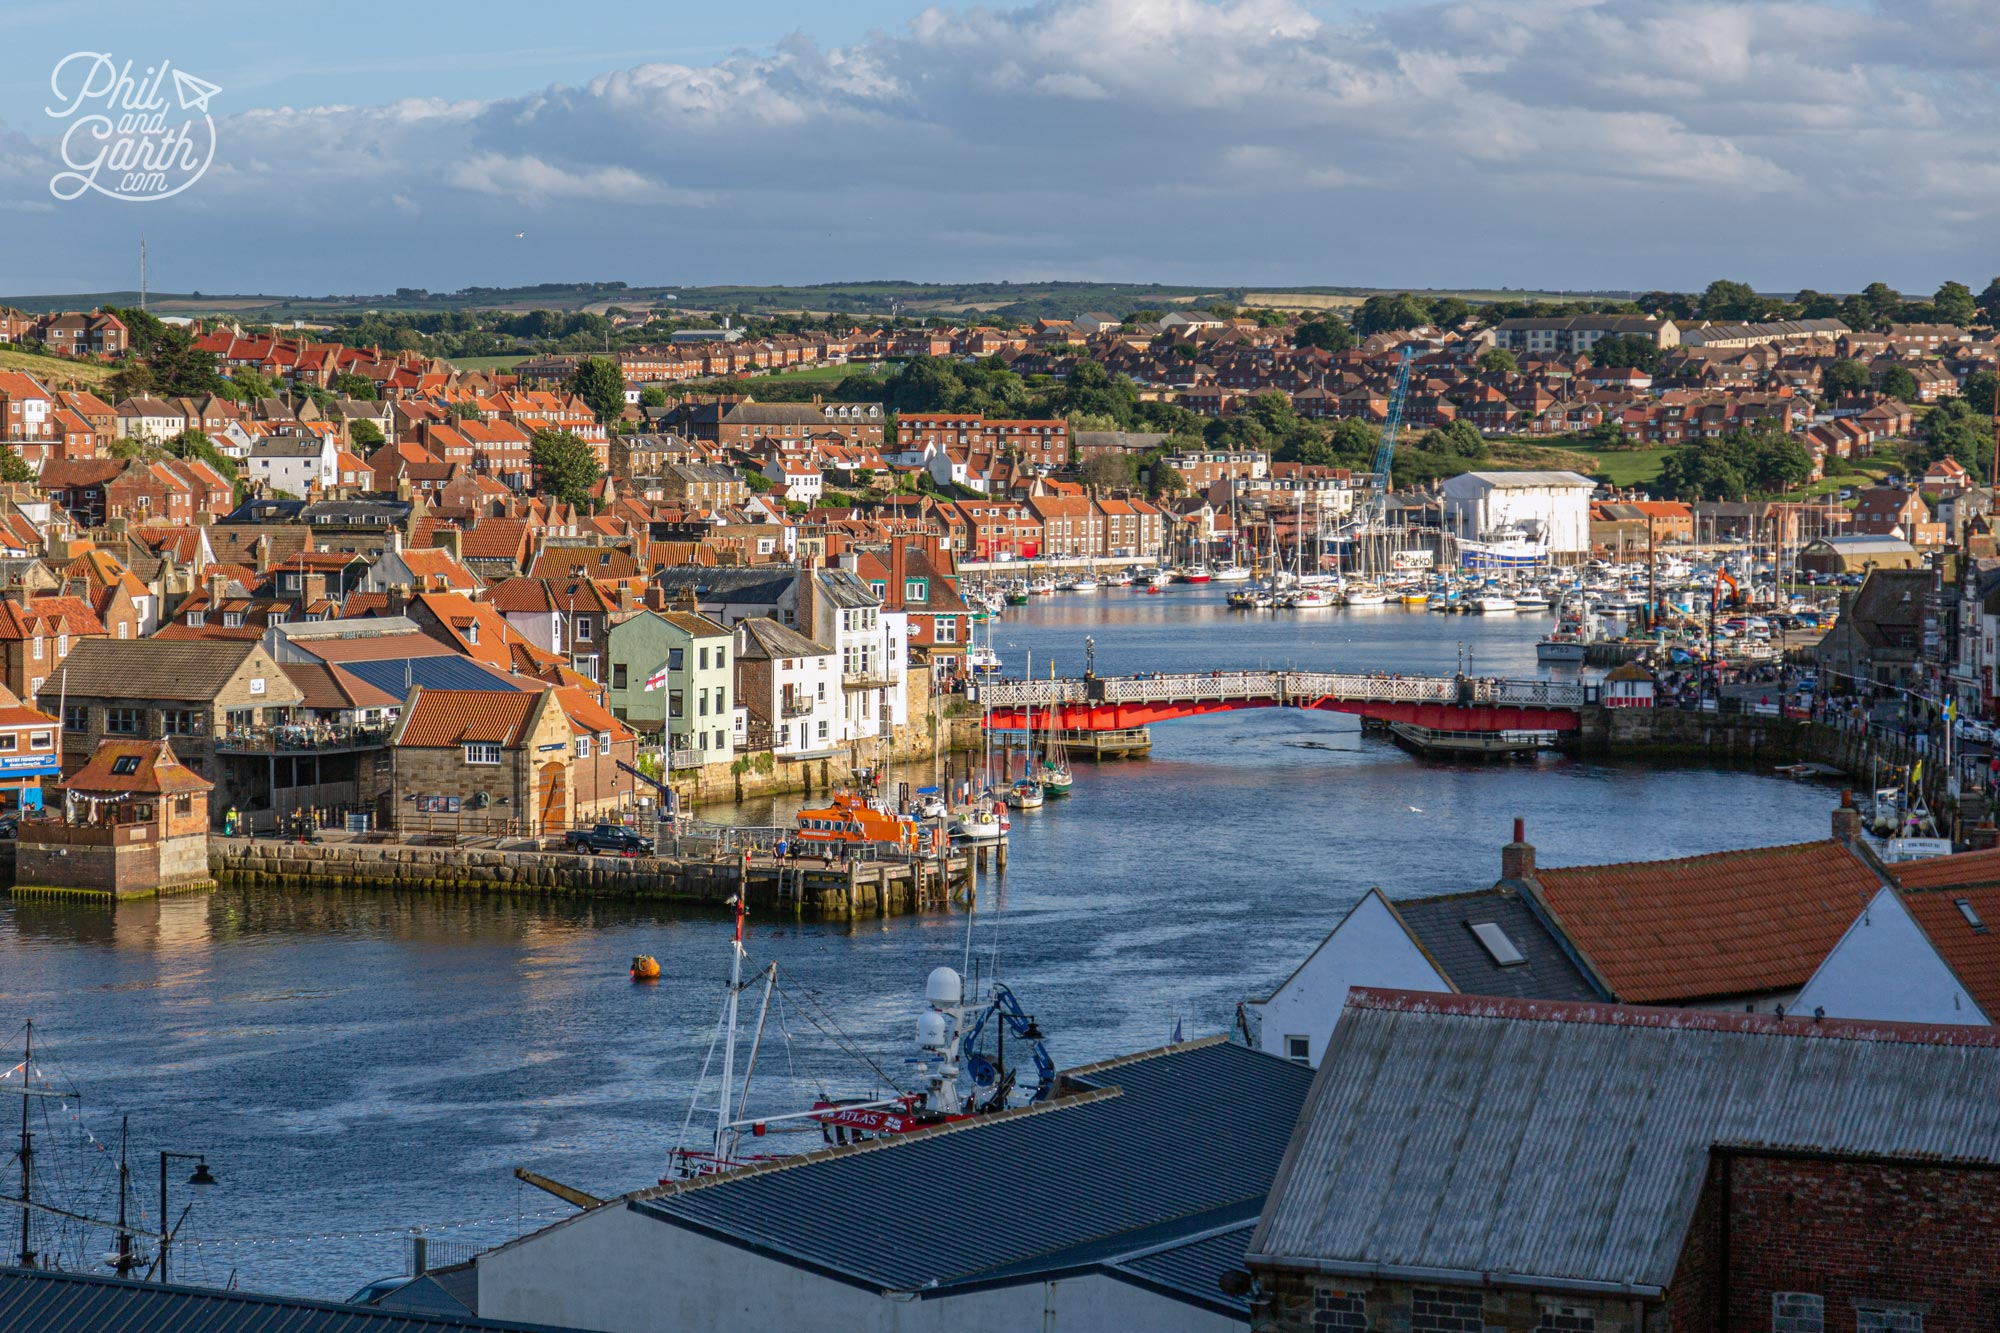 Whitby is located in North Yorkshire at the mouth of the River Esk on the North Sea